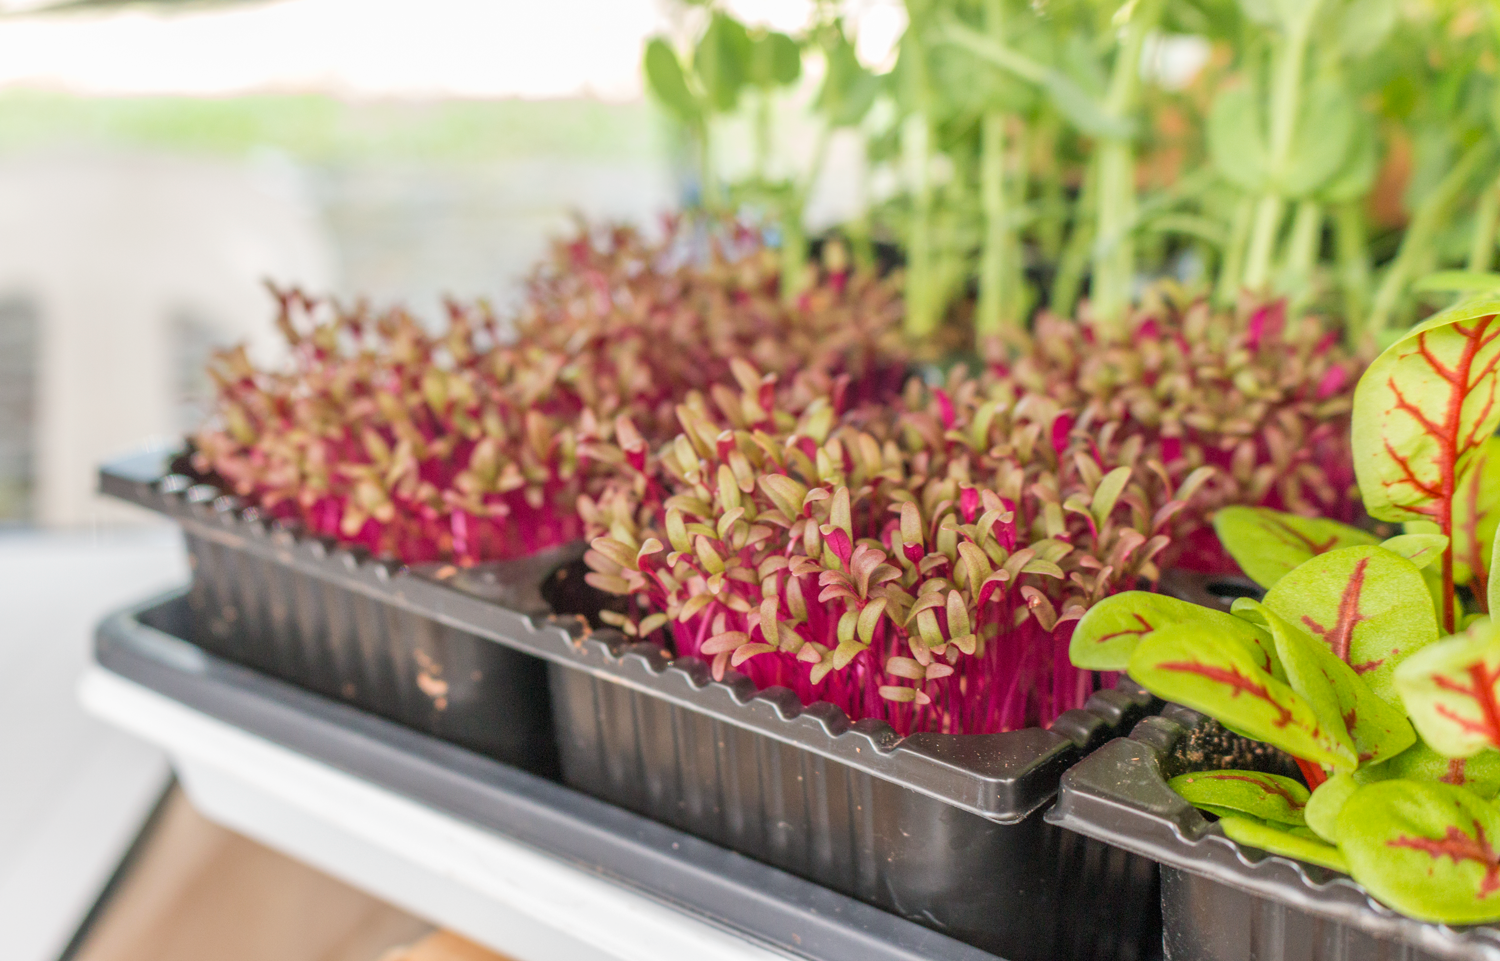 Sprouting Red Amaranth